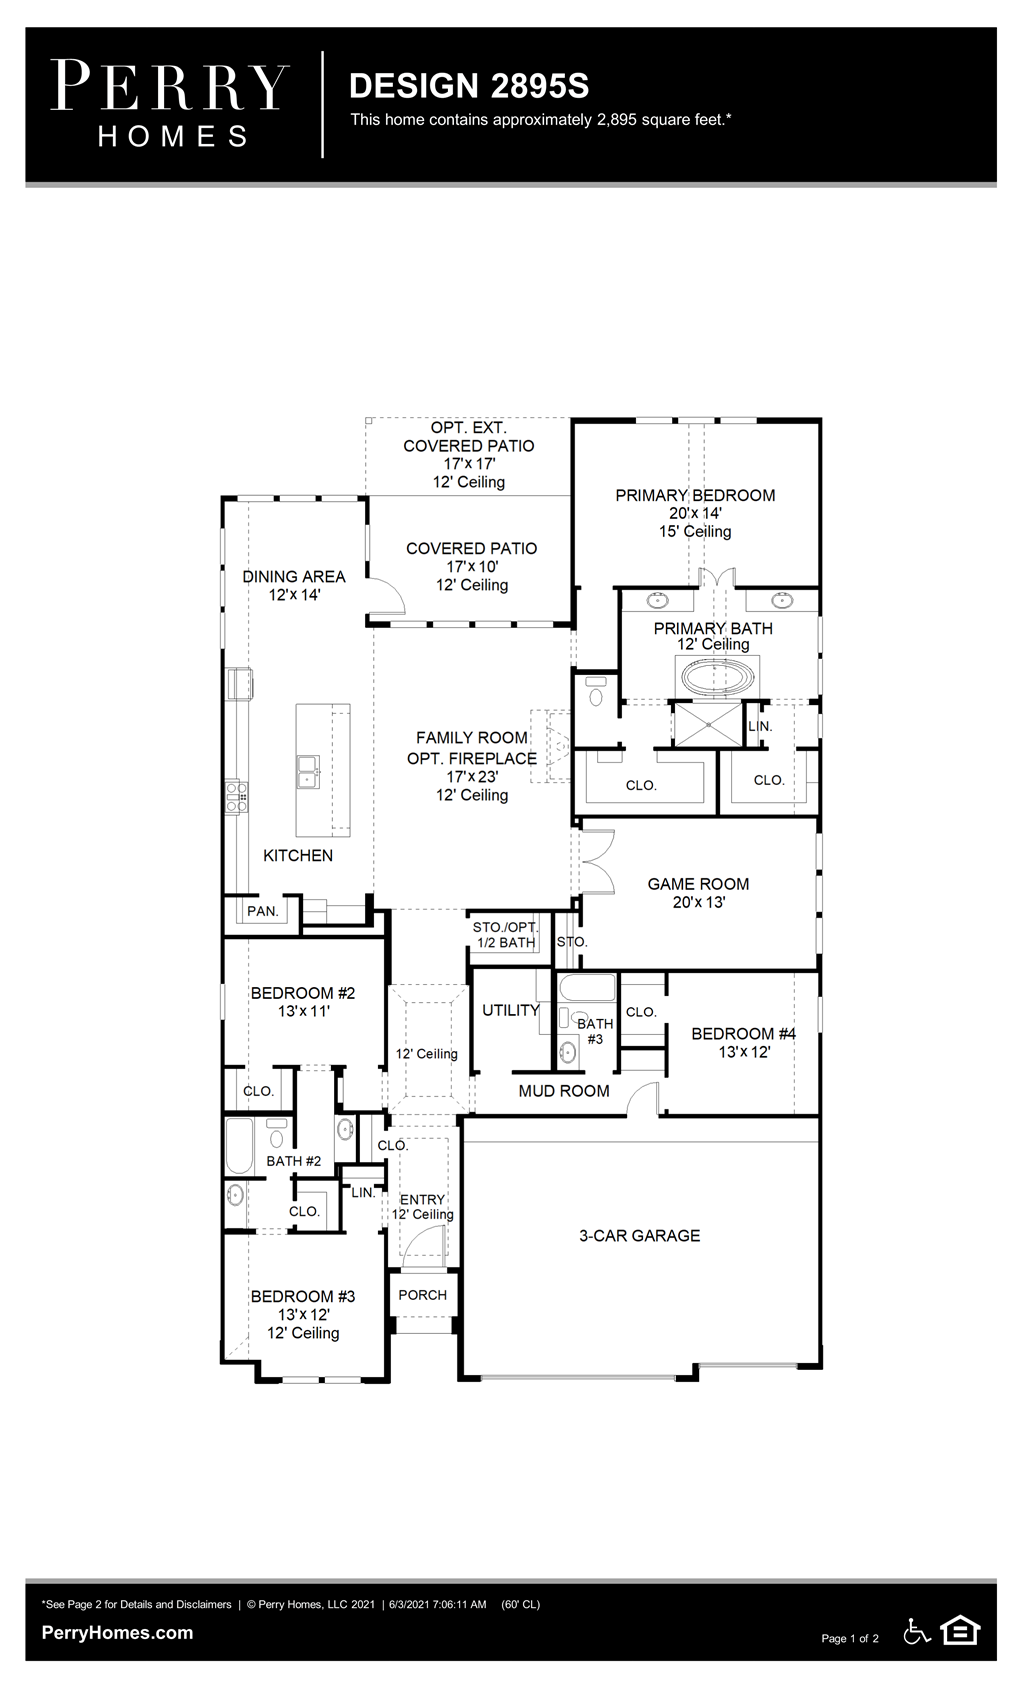 Floor Plan for 2895S